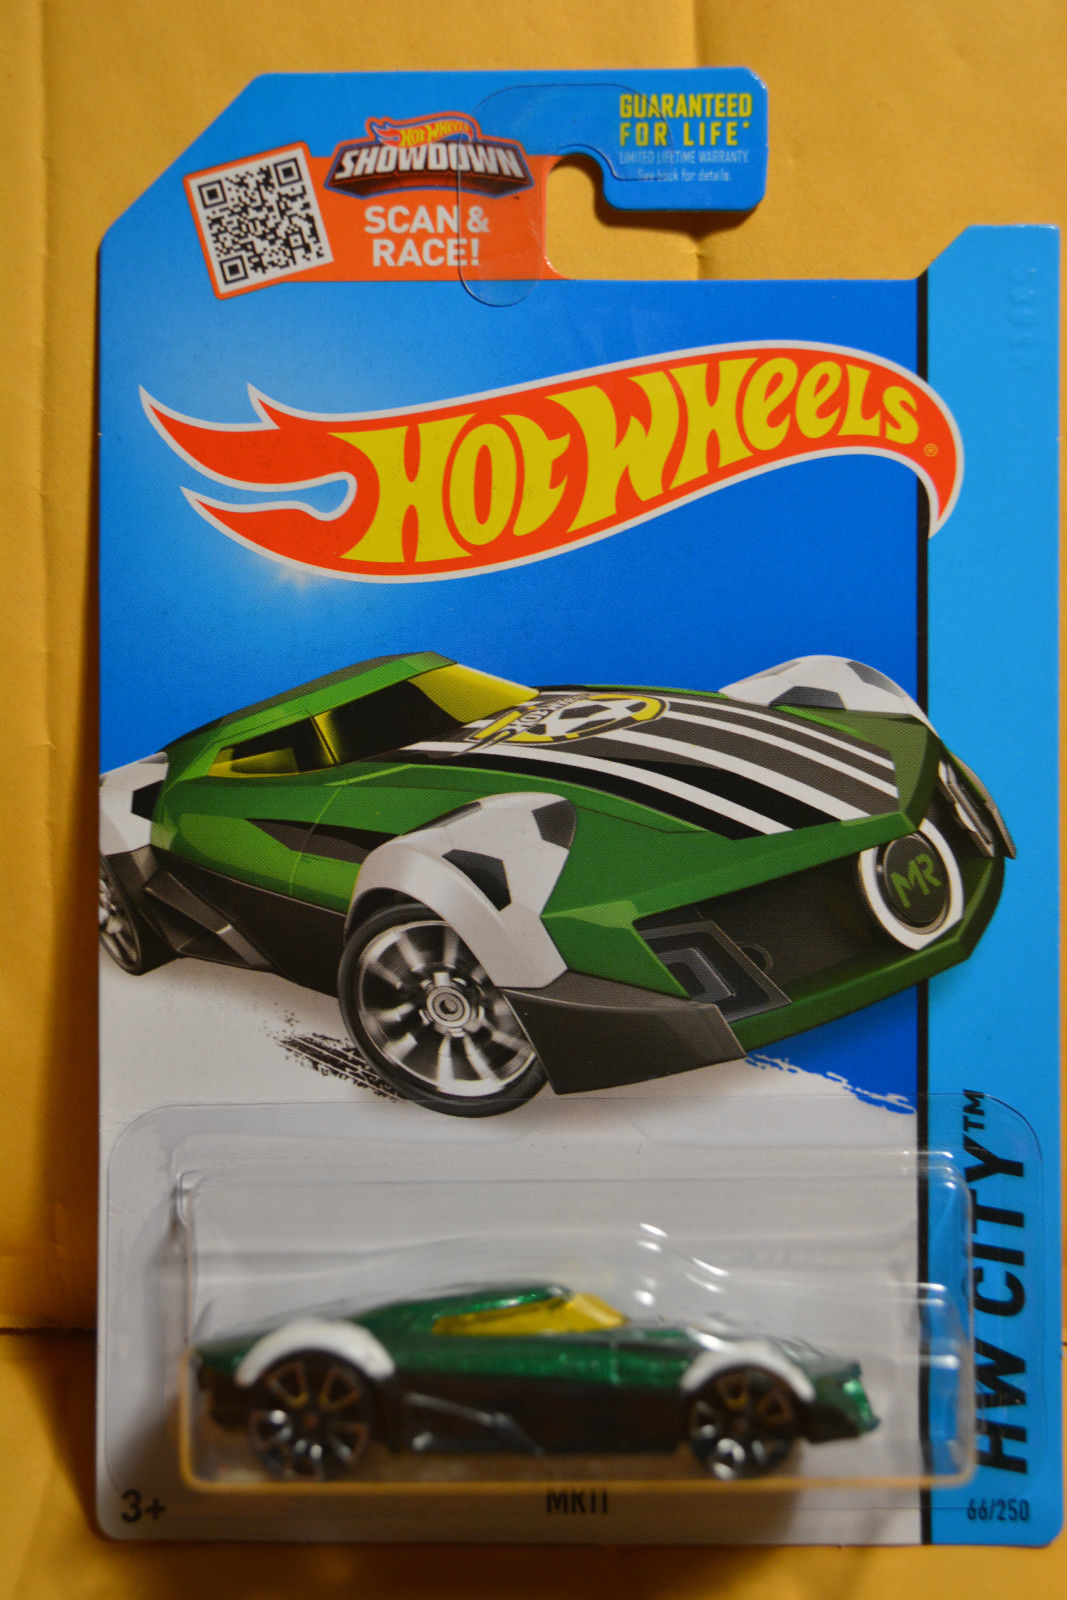 2015 066 - Hall\'s Guide for Hot Wheels Collectors